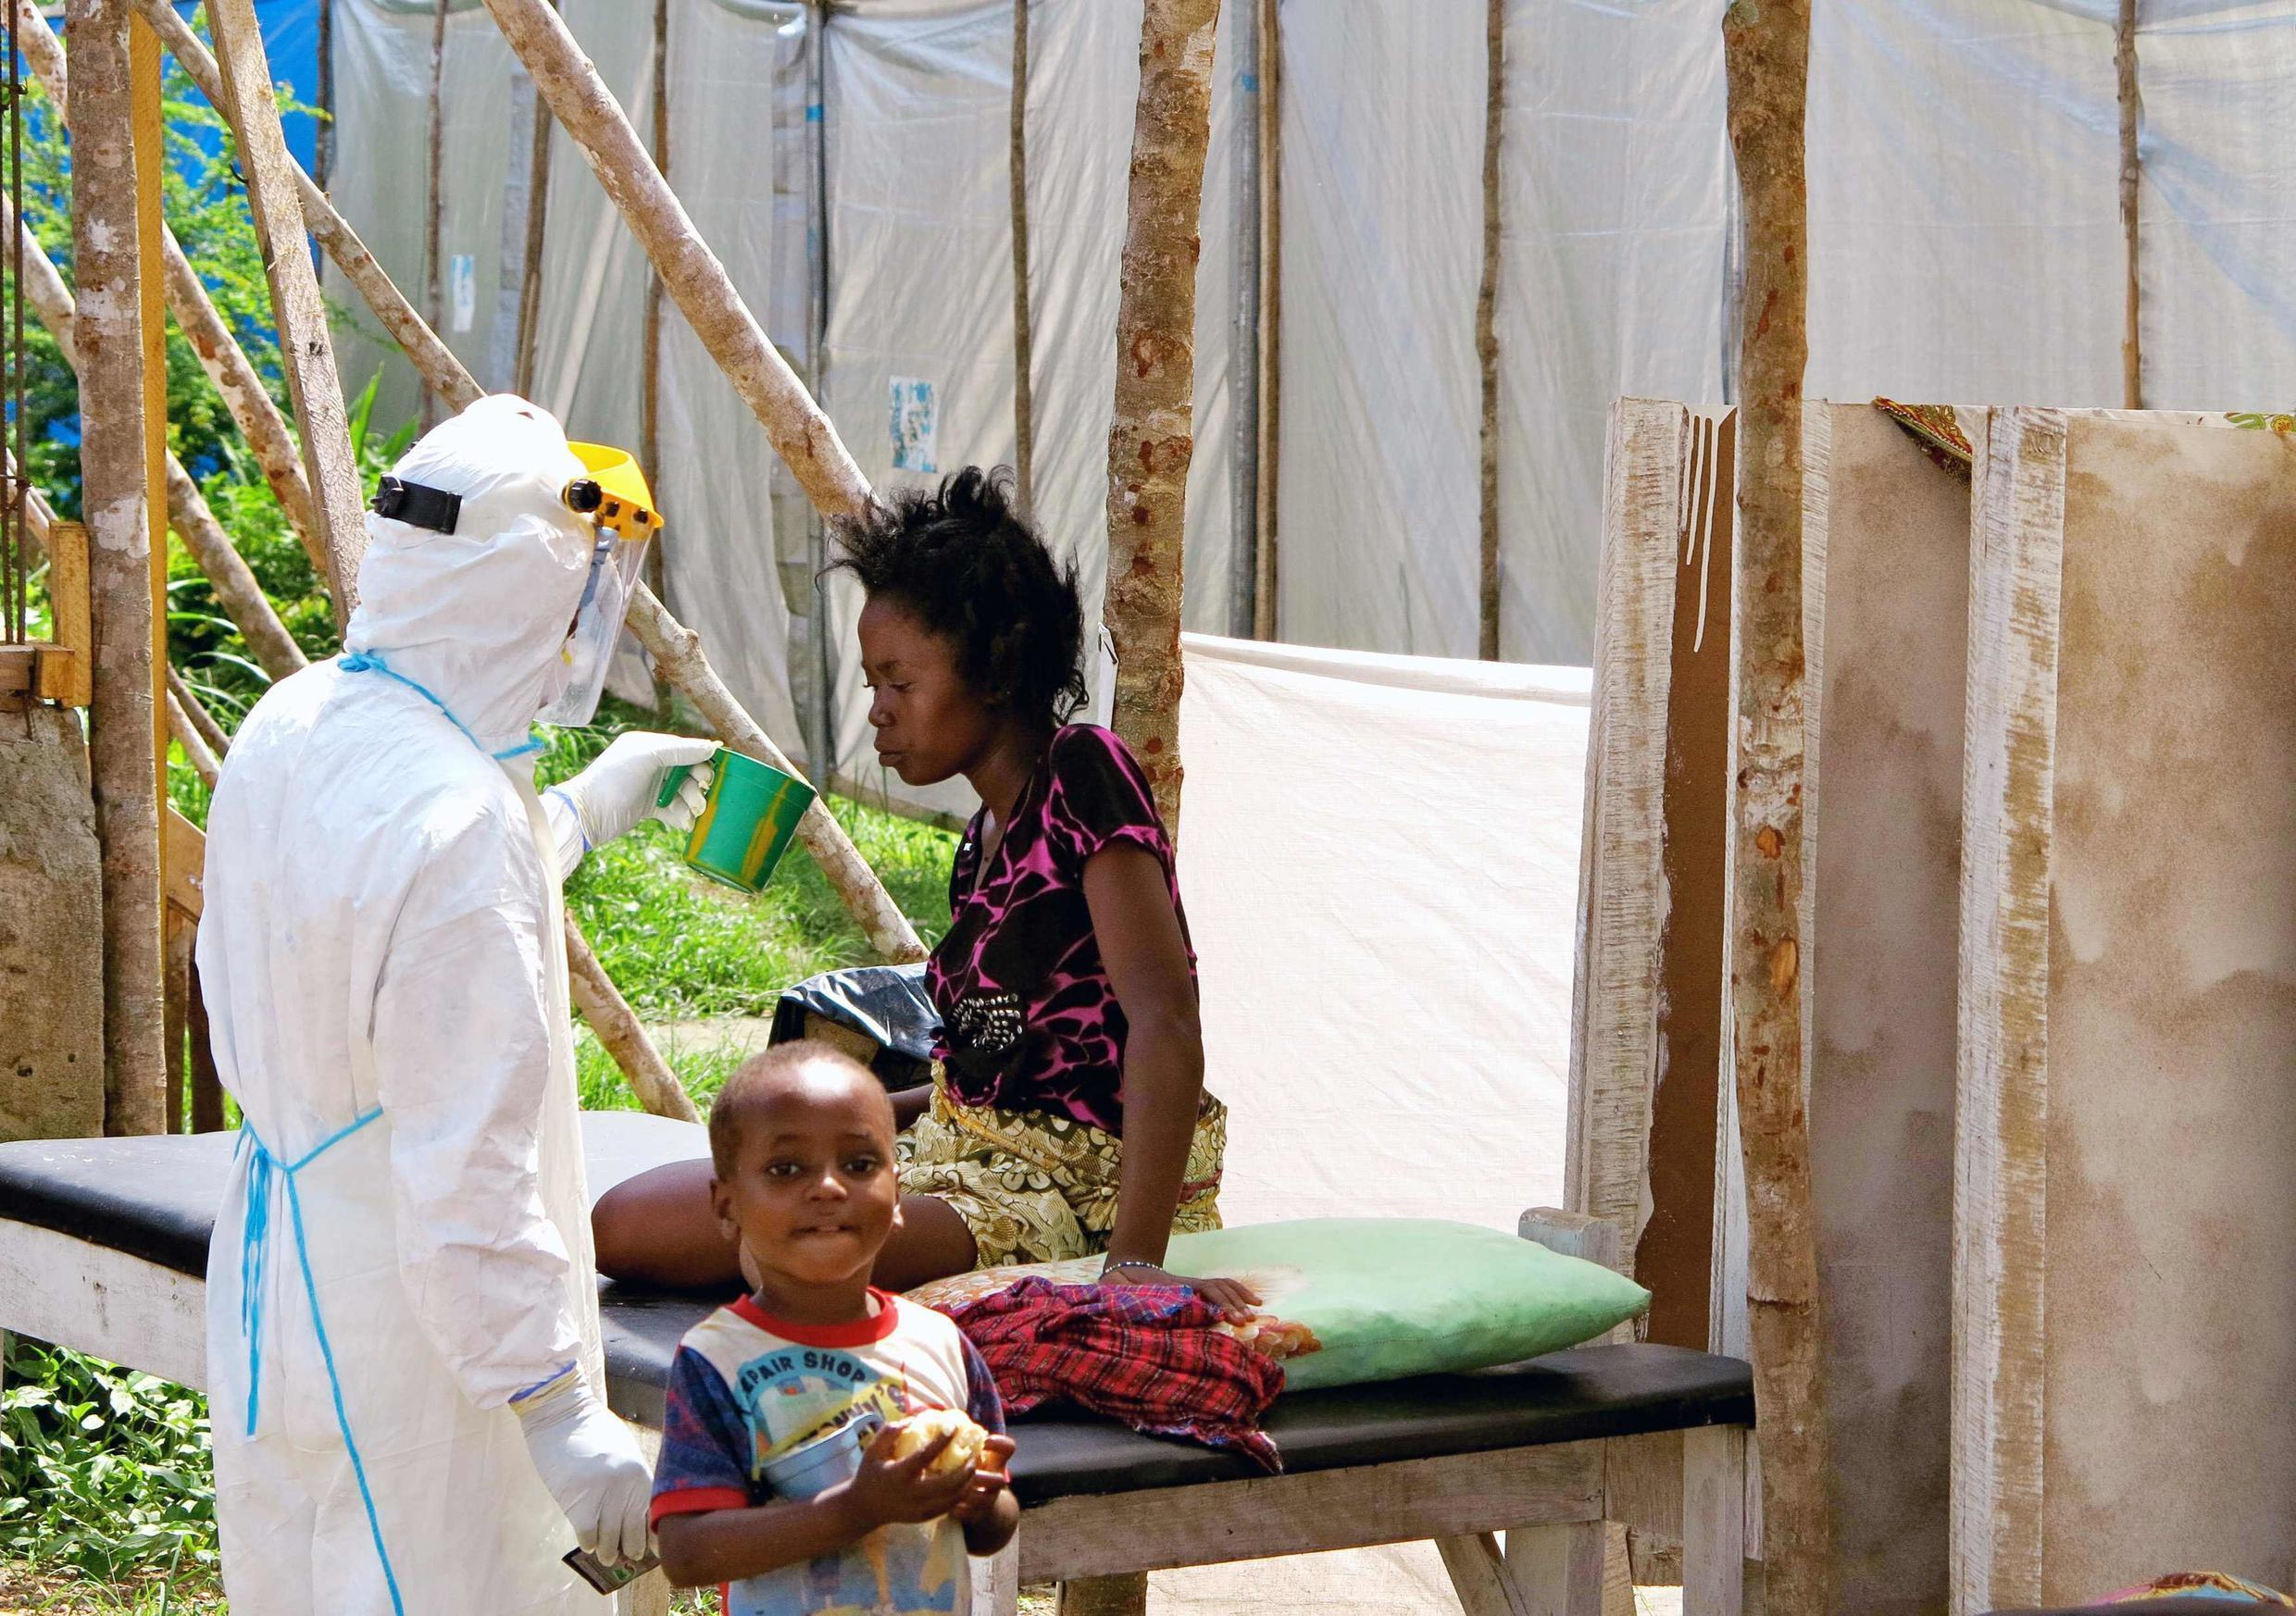 A health worker gives water to a female Ebola victim in a specialized treatment center in Kenema (Sierra Leone), July 2014.